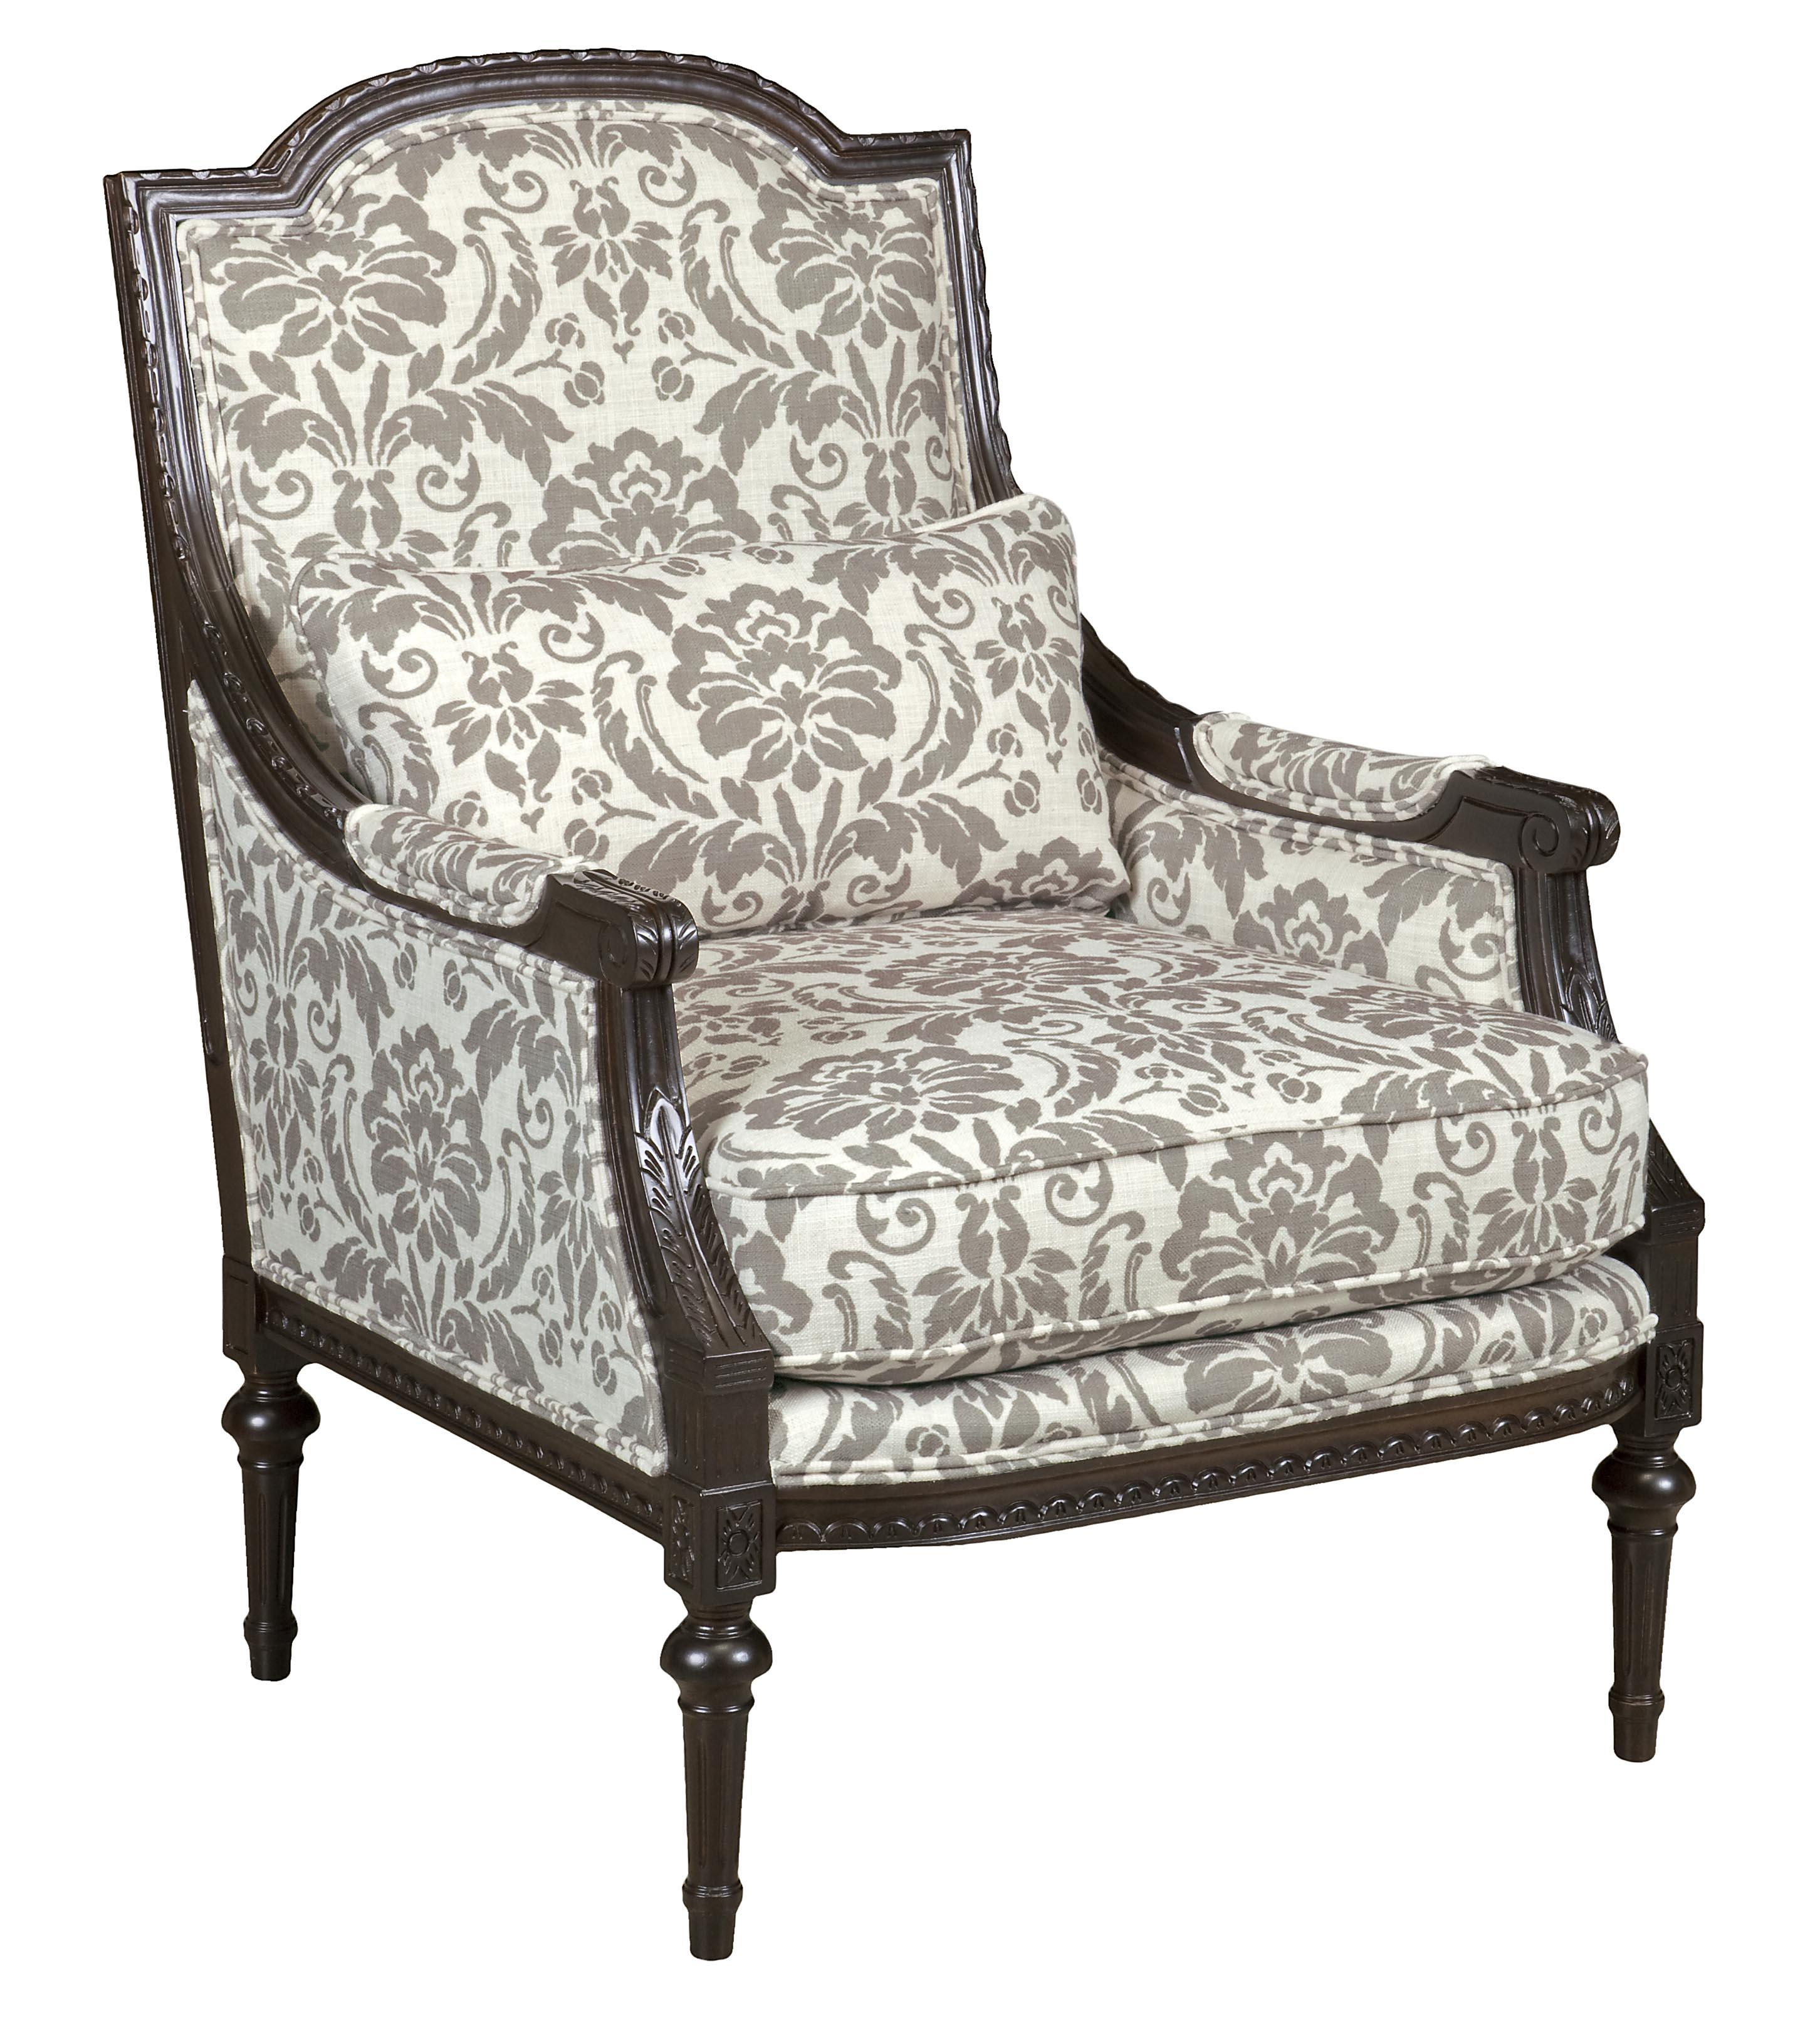 Accent Chairs Litchfield Chair by Kincaid Furniture at Johnny Janosik